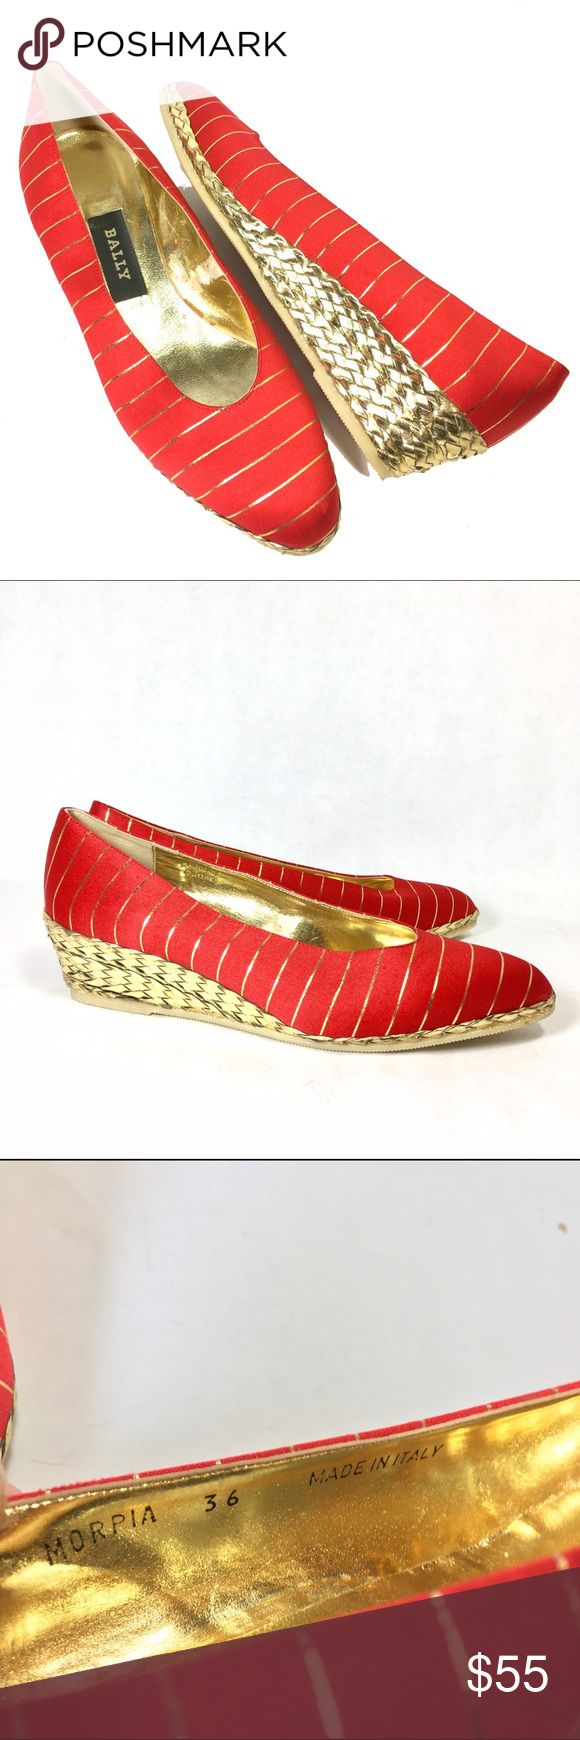 NEW Vtg BALLY Red & Gold Stripe Wedges Shoes 36 NEW Vintage BALLY Red & Gold Striped Sateen Wedges   Size 36 (US Size 5.5 or 6)   Style No. MORPIA   New Old Stock Vintage   Woven Gold Leather Covered Low Wedge Heels   Soft/Rounded Pointed Toe   Excellent/New Condition   They look very comfortable!   Guaranteed Authentic Bally of Switzerland!   Made in Italy 🇮🇹   Thanks for your interest! Bally Shoes Wedges